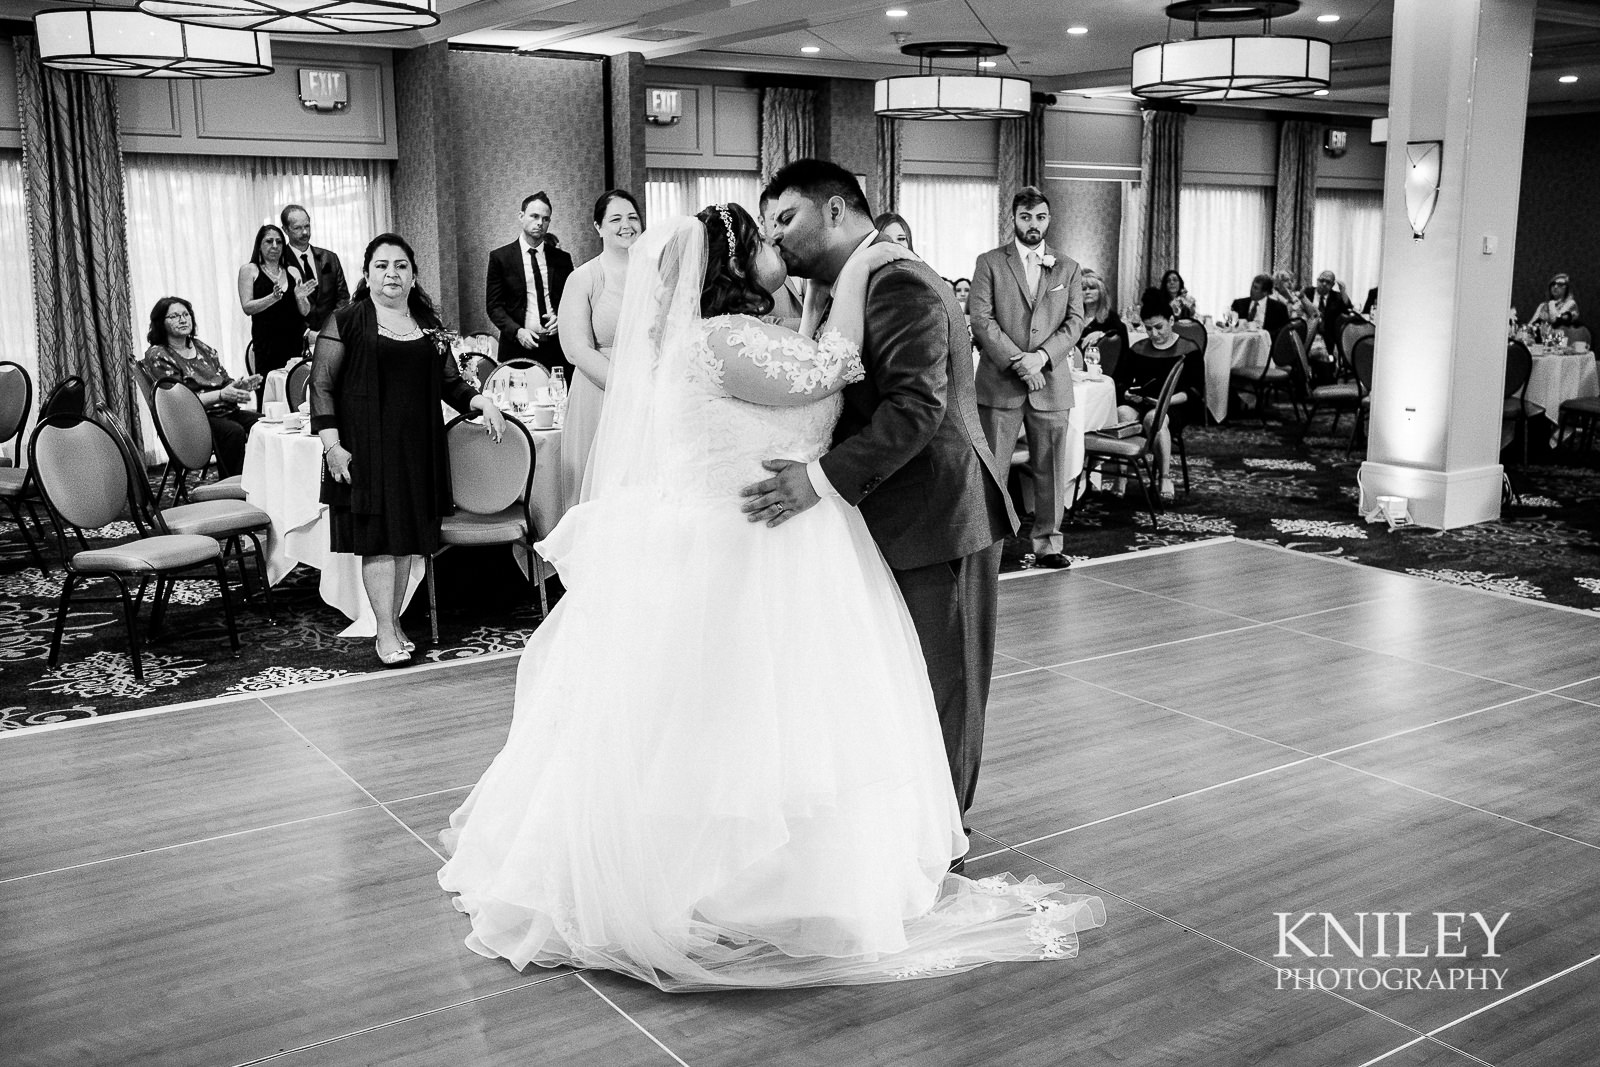 088 - Woodcliff Hotel - Rochester NY wedding photo - Kniley Photography.jpg